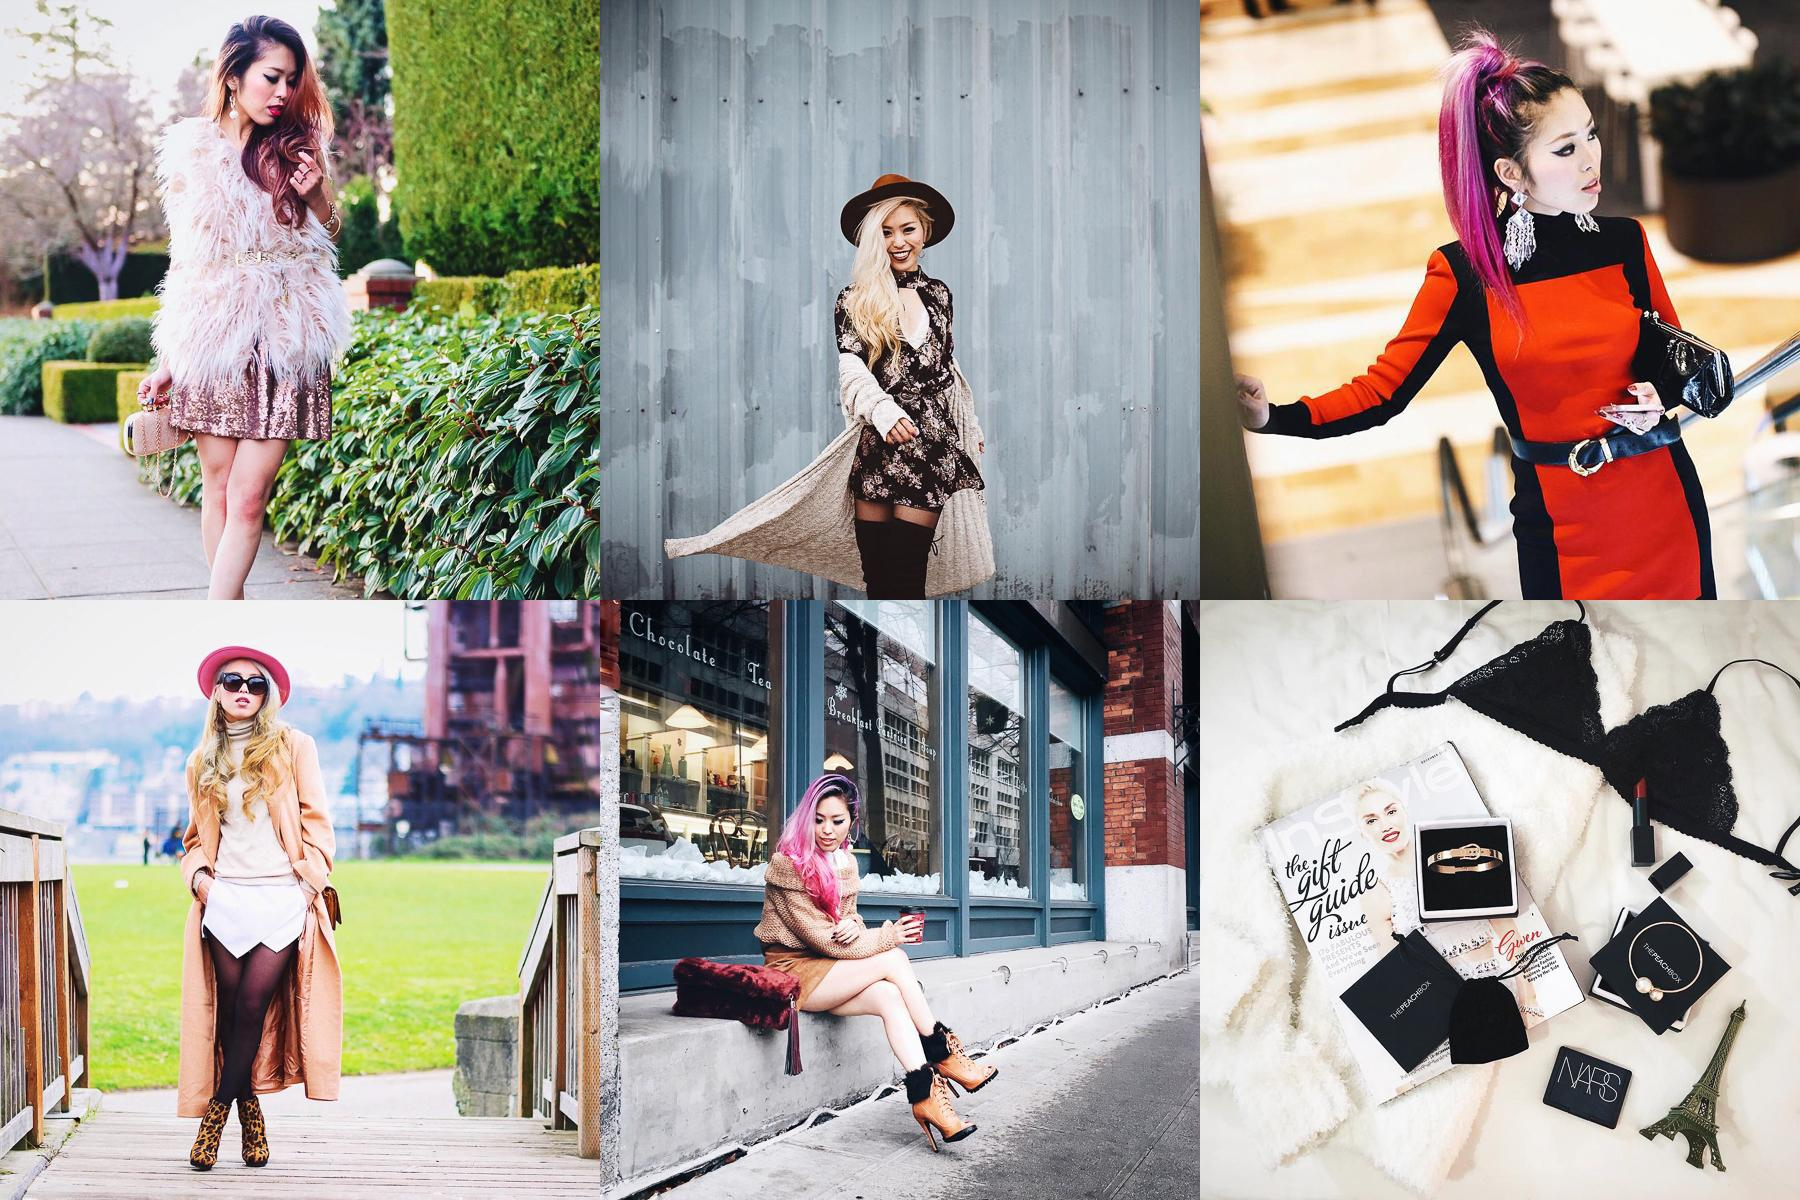 Aika hails from Japan and has been in Seattle since 2008. Her Instagram is filled with amazing photos of her outfits where she always looks great. Pair that with whatever hair color she is currently has and her feed definitely pops. (Images courtesy of @Aikaslovecloset)